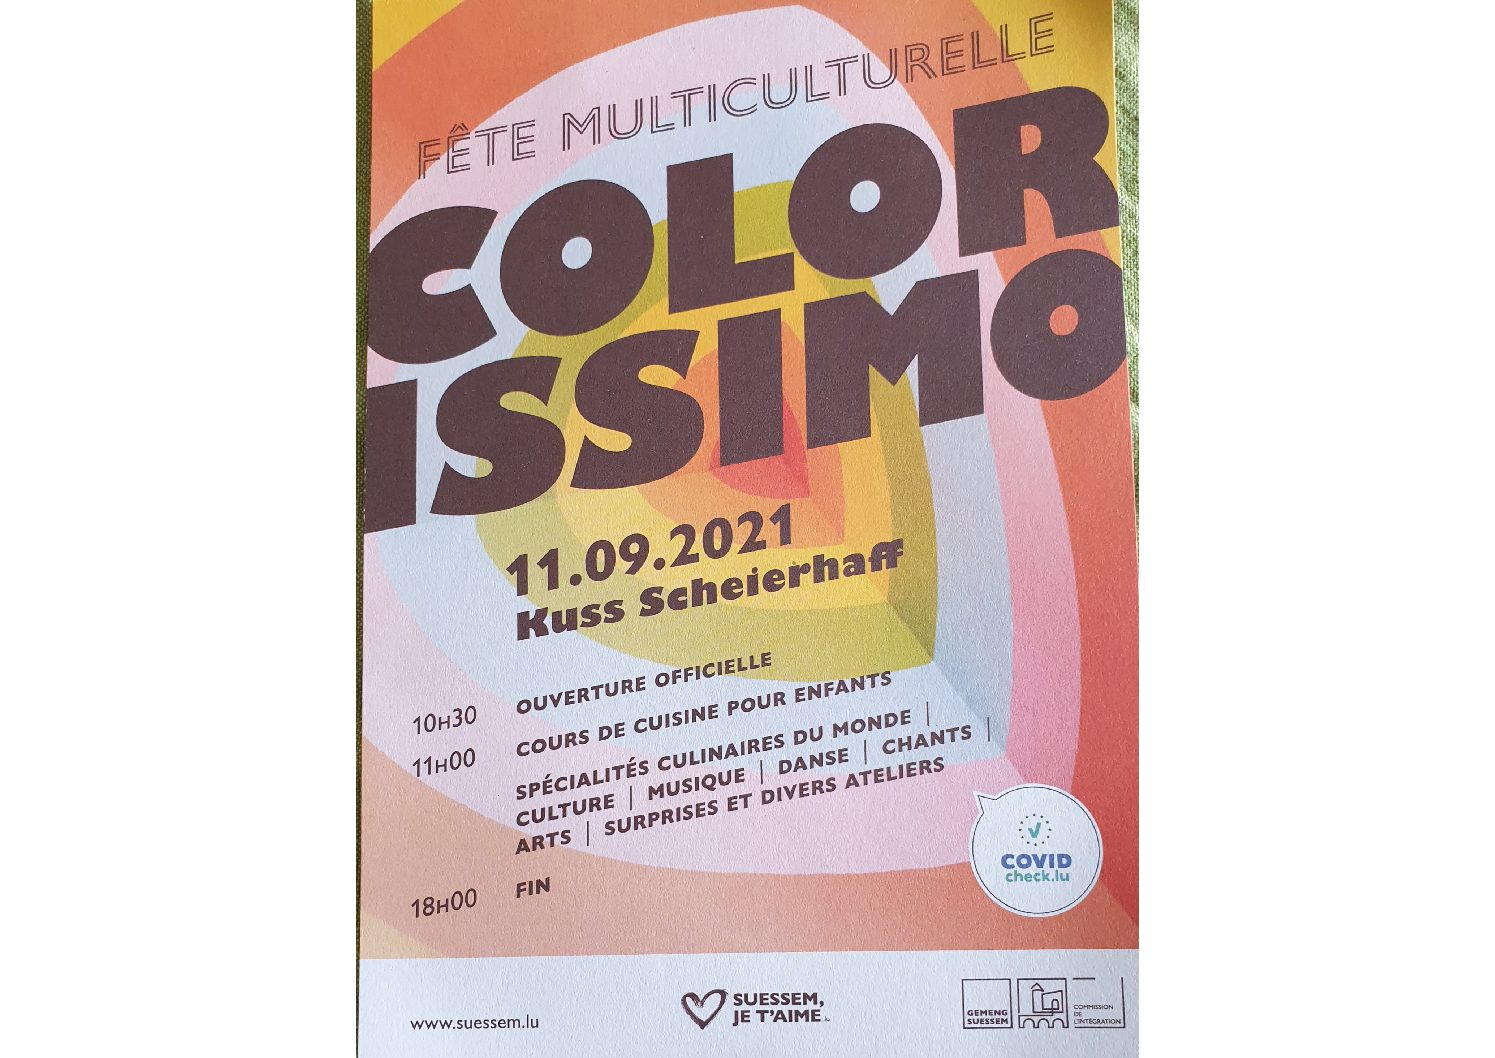 [AMIF] Our participation in the 2nd COLORISSIMO multicultural festival in Sanem (2021)